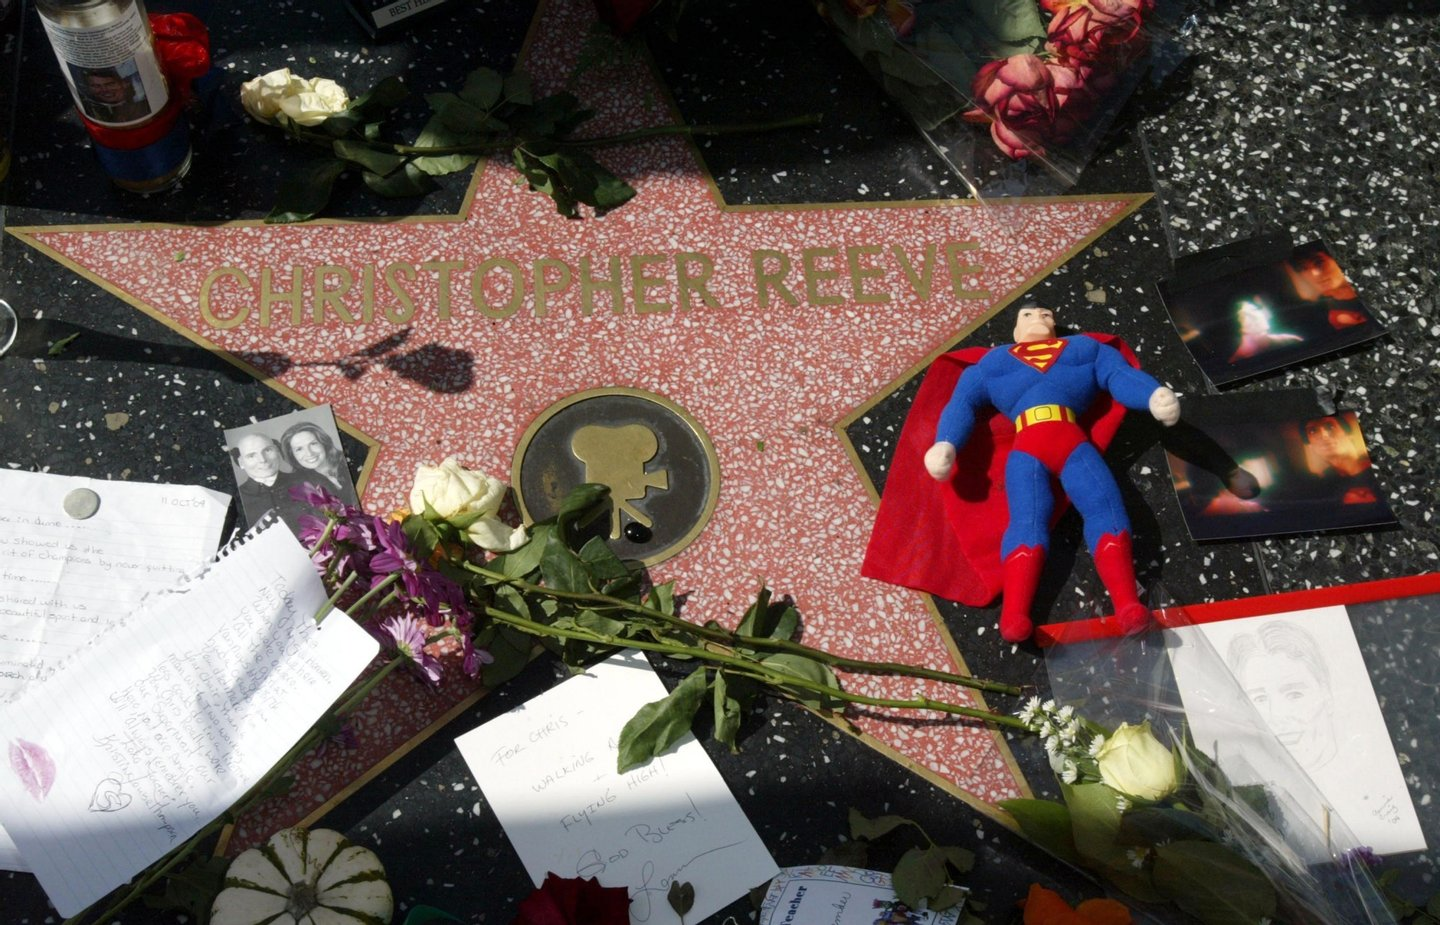 HOLLYWOOD, CA - OCTOBER 11:  Flowers and memorbilla are seen on Christopher Reeve's star at the Hollywood Walk of Fame on October 11, 2004 in Hollywood, California. Reeve died of heart failure on October 10.  (Photo by Frazer Harrison/Getty Images)